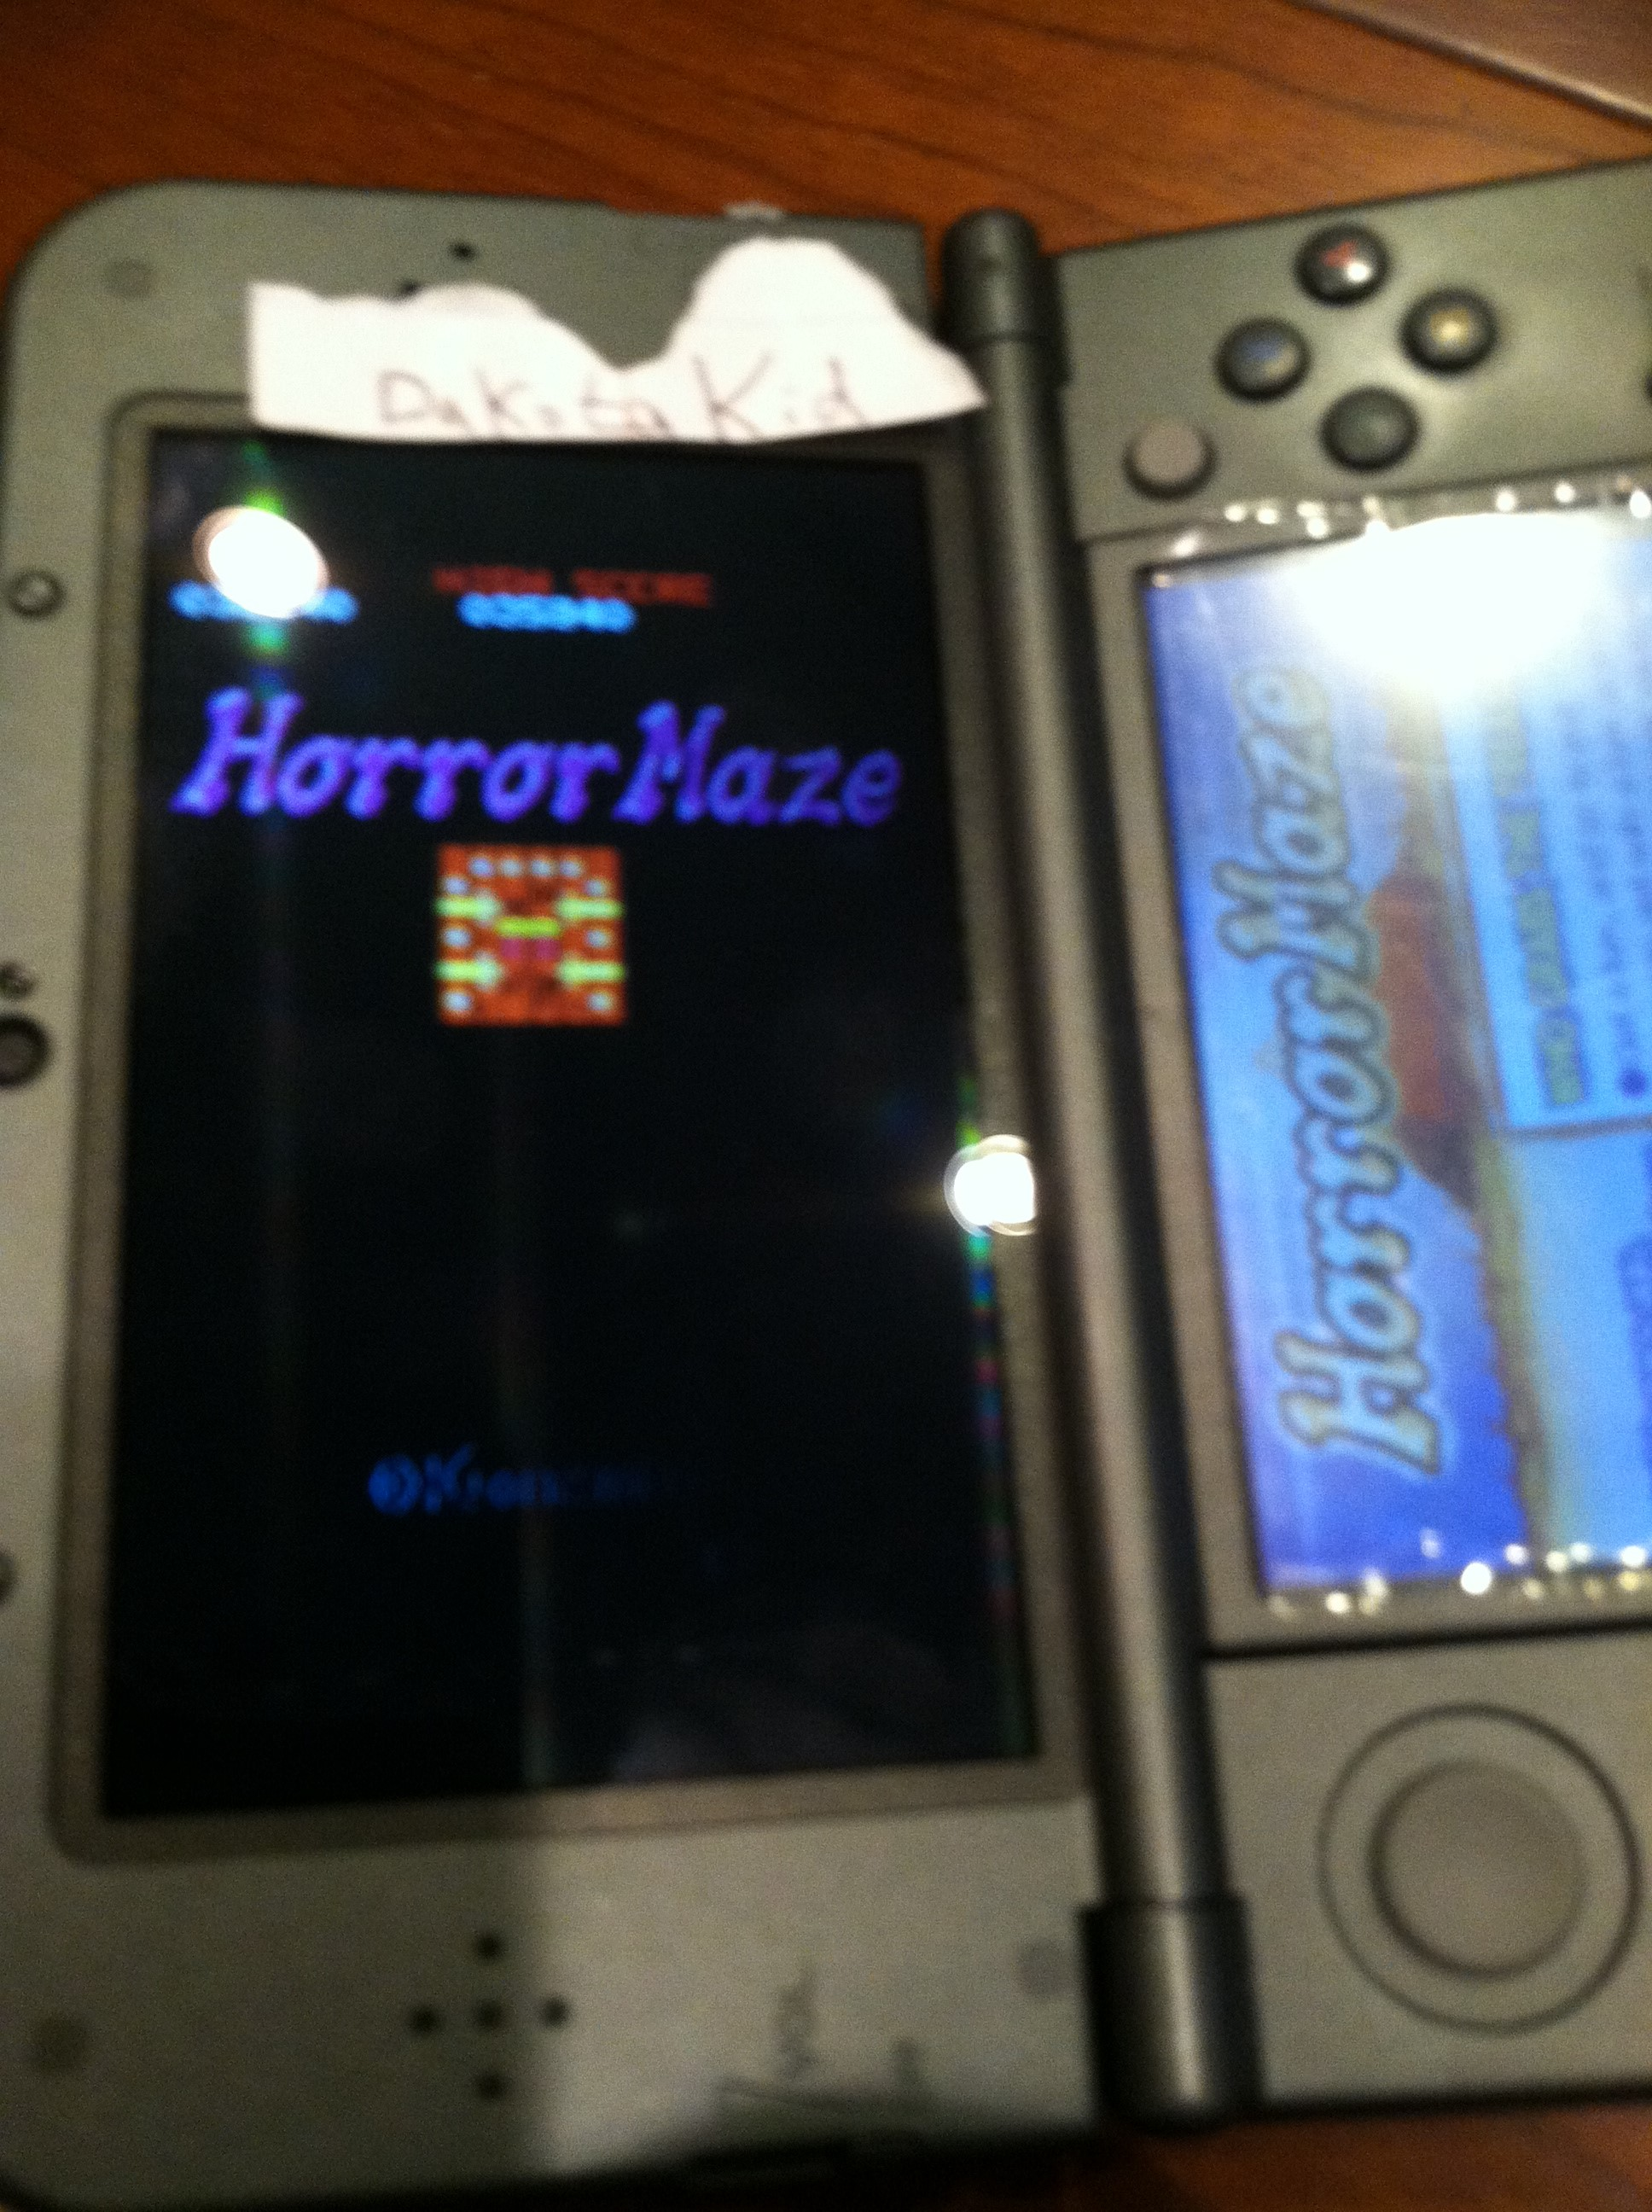 Konami Classics Series: Arcade Hits: Tutankham / Horror Maze 32,140 points